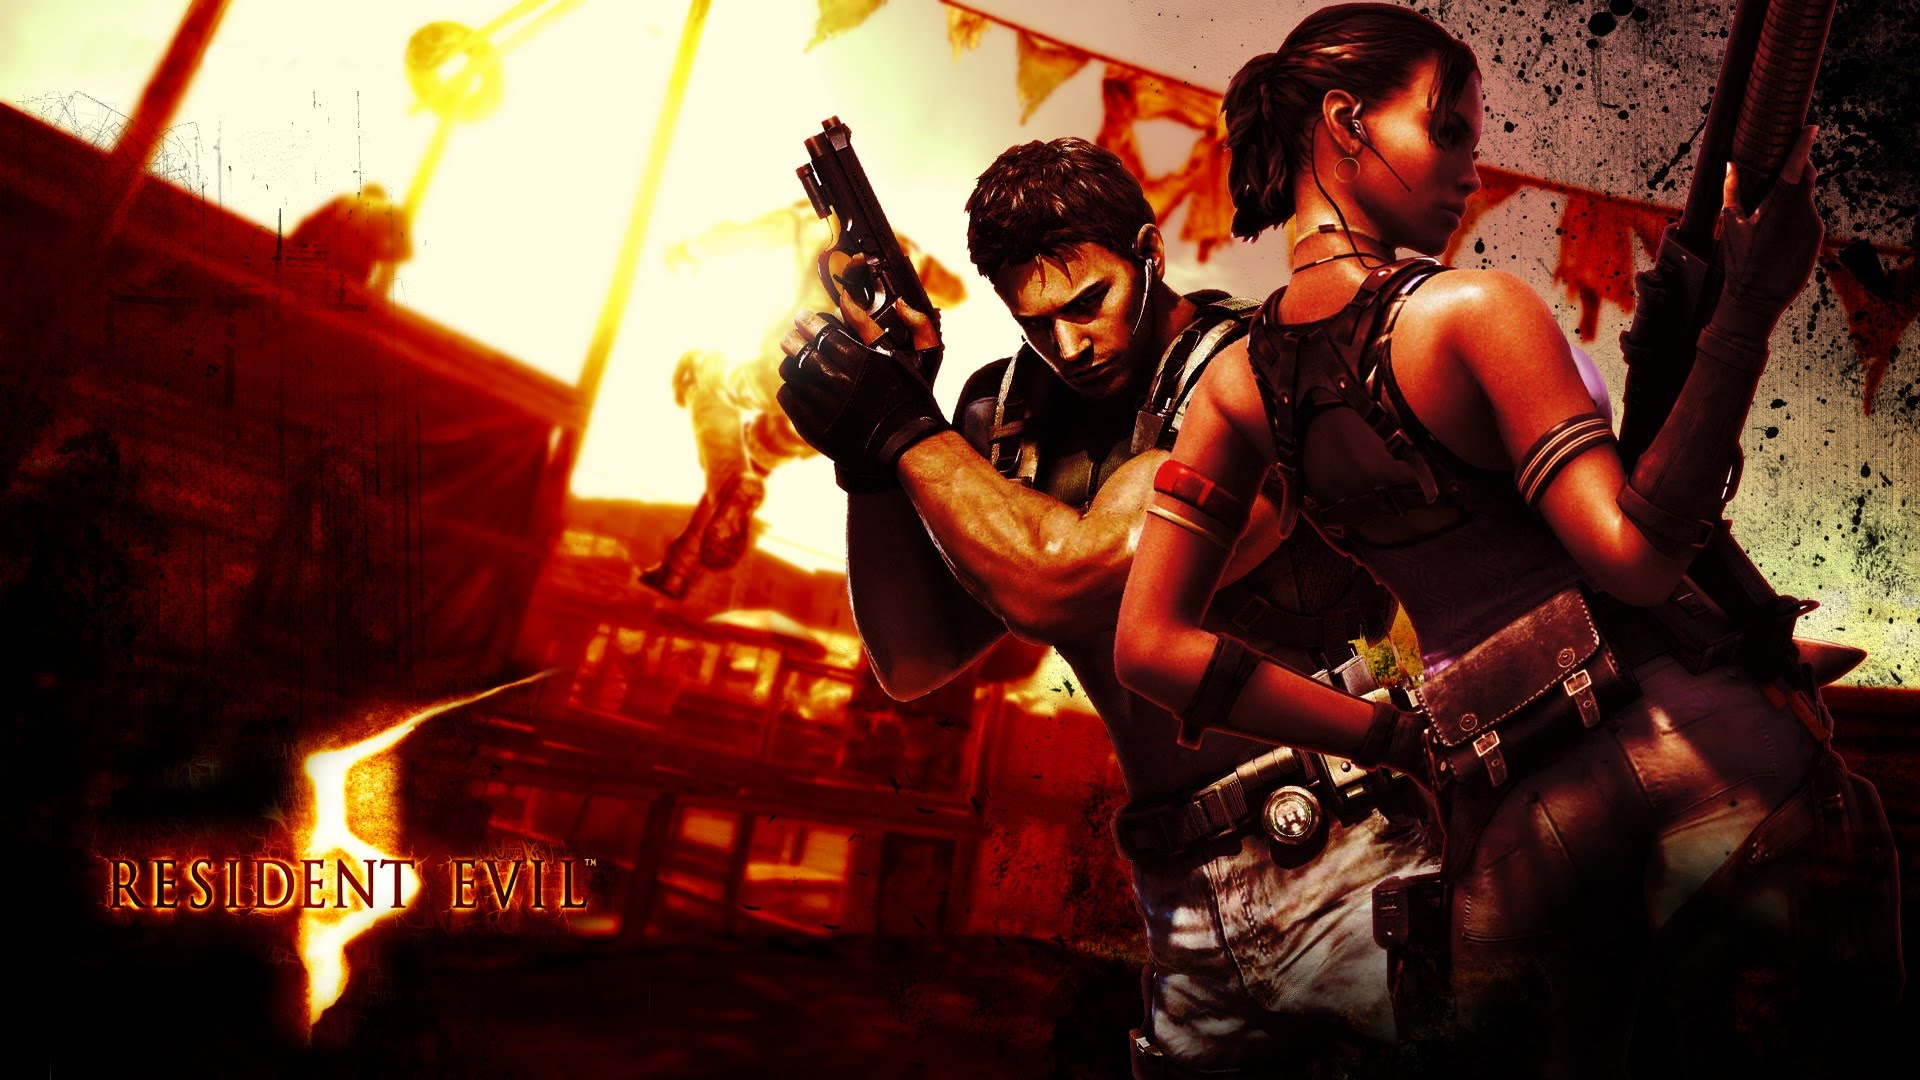 Resident Evil 5 Game Reviews Crossfader